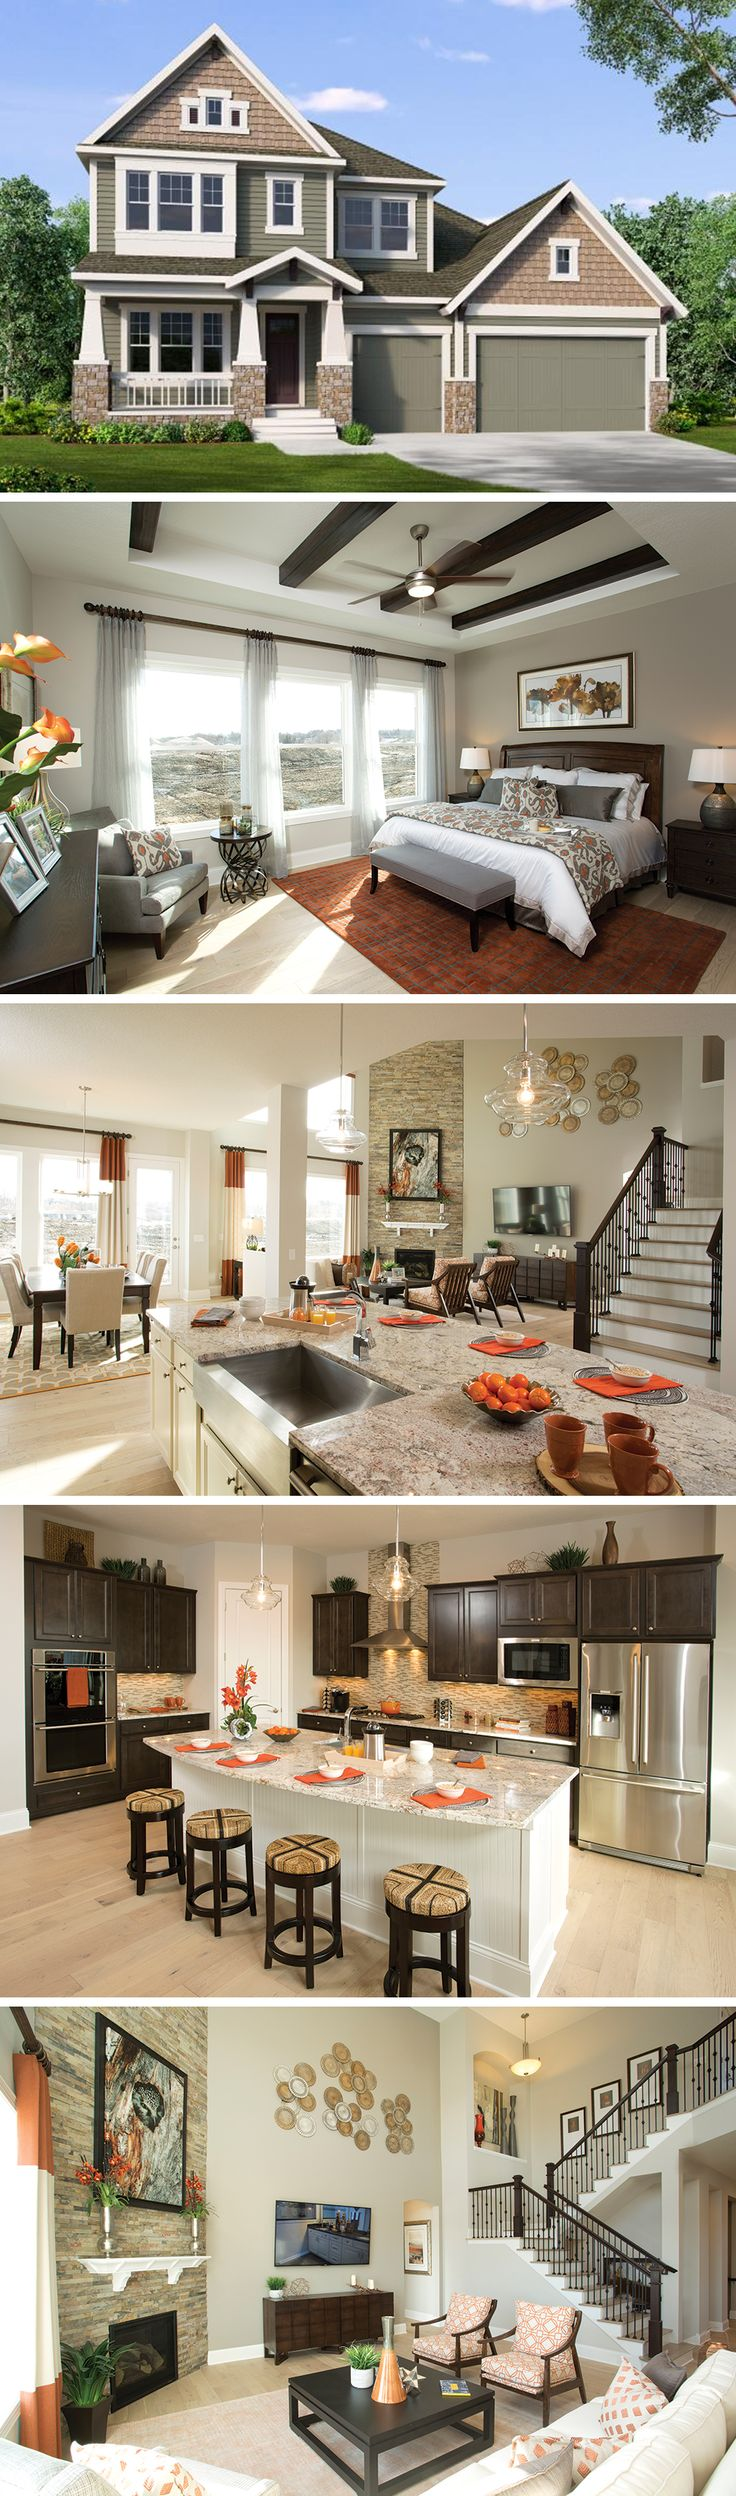 Huge bedroom dream homes pinterest - Best 25 Basement House Plans Ideas Only On Pinterest House Layouts Craftsman Floor Plans And Basement Floor Plans